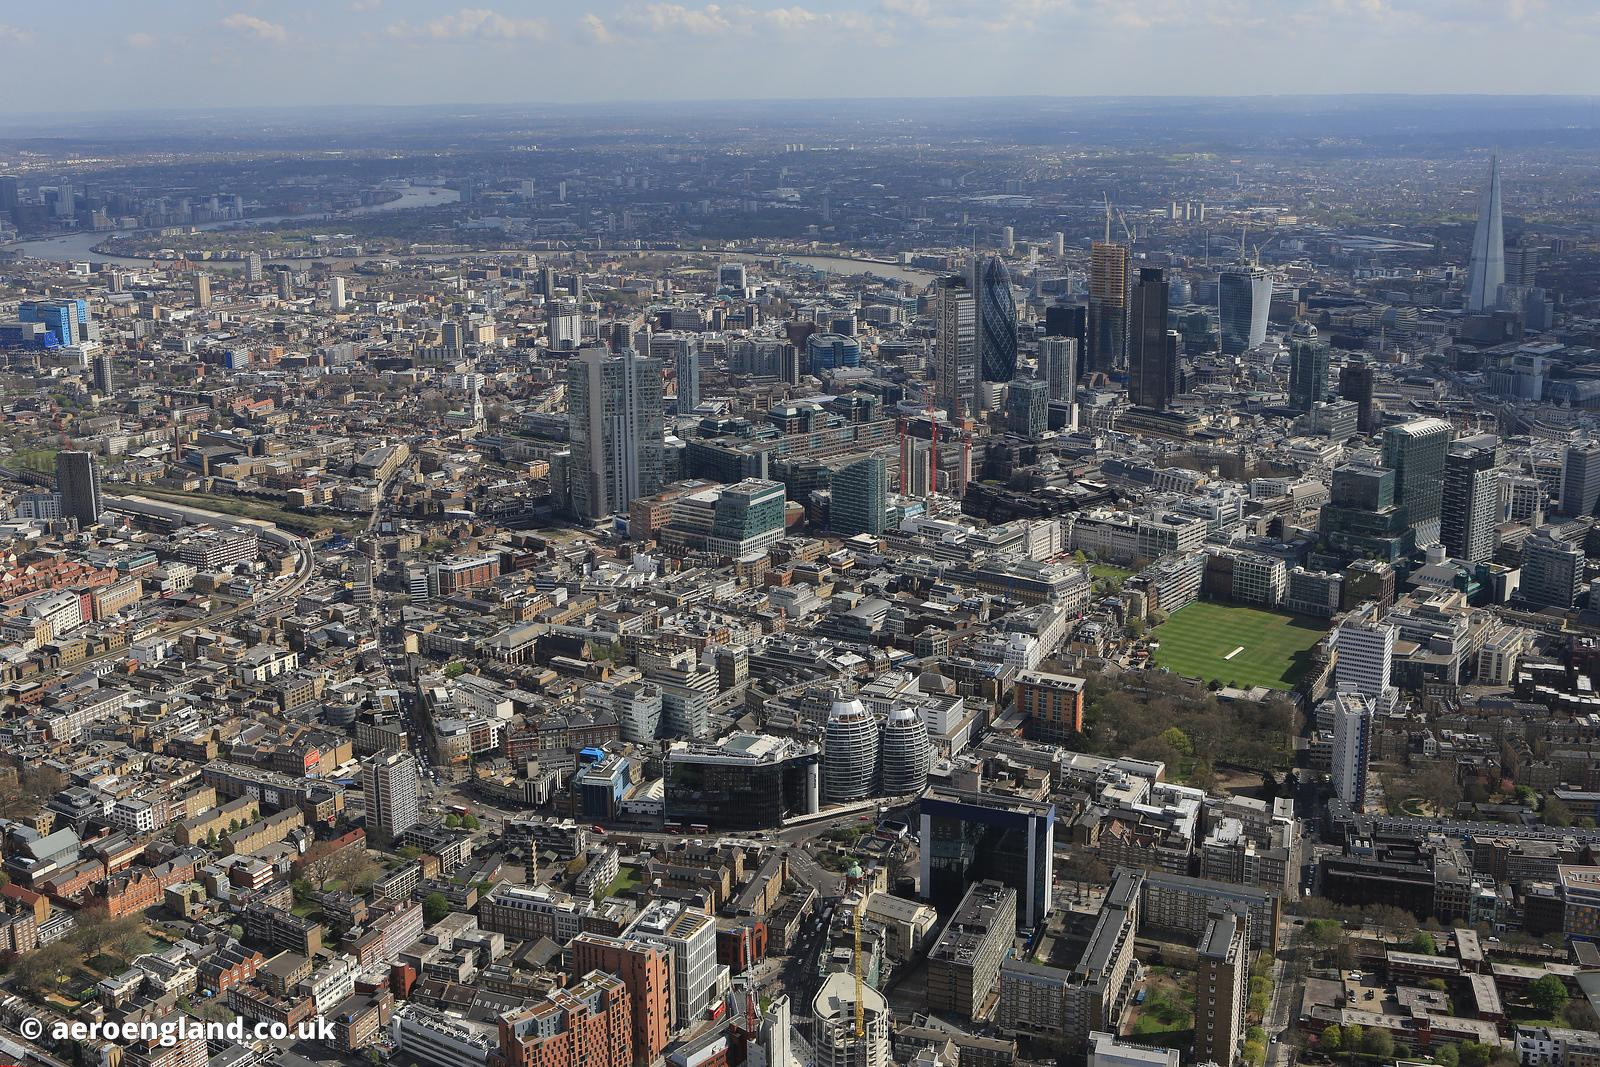 aerial photograph of the area around City Rd London EC1Y 2BP showing Old St EC1V 9DD in the foreground and the City of London financial district in the background.